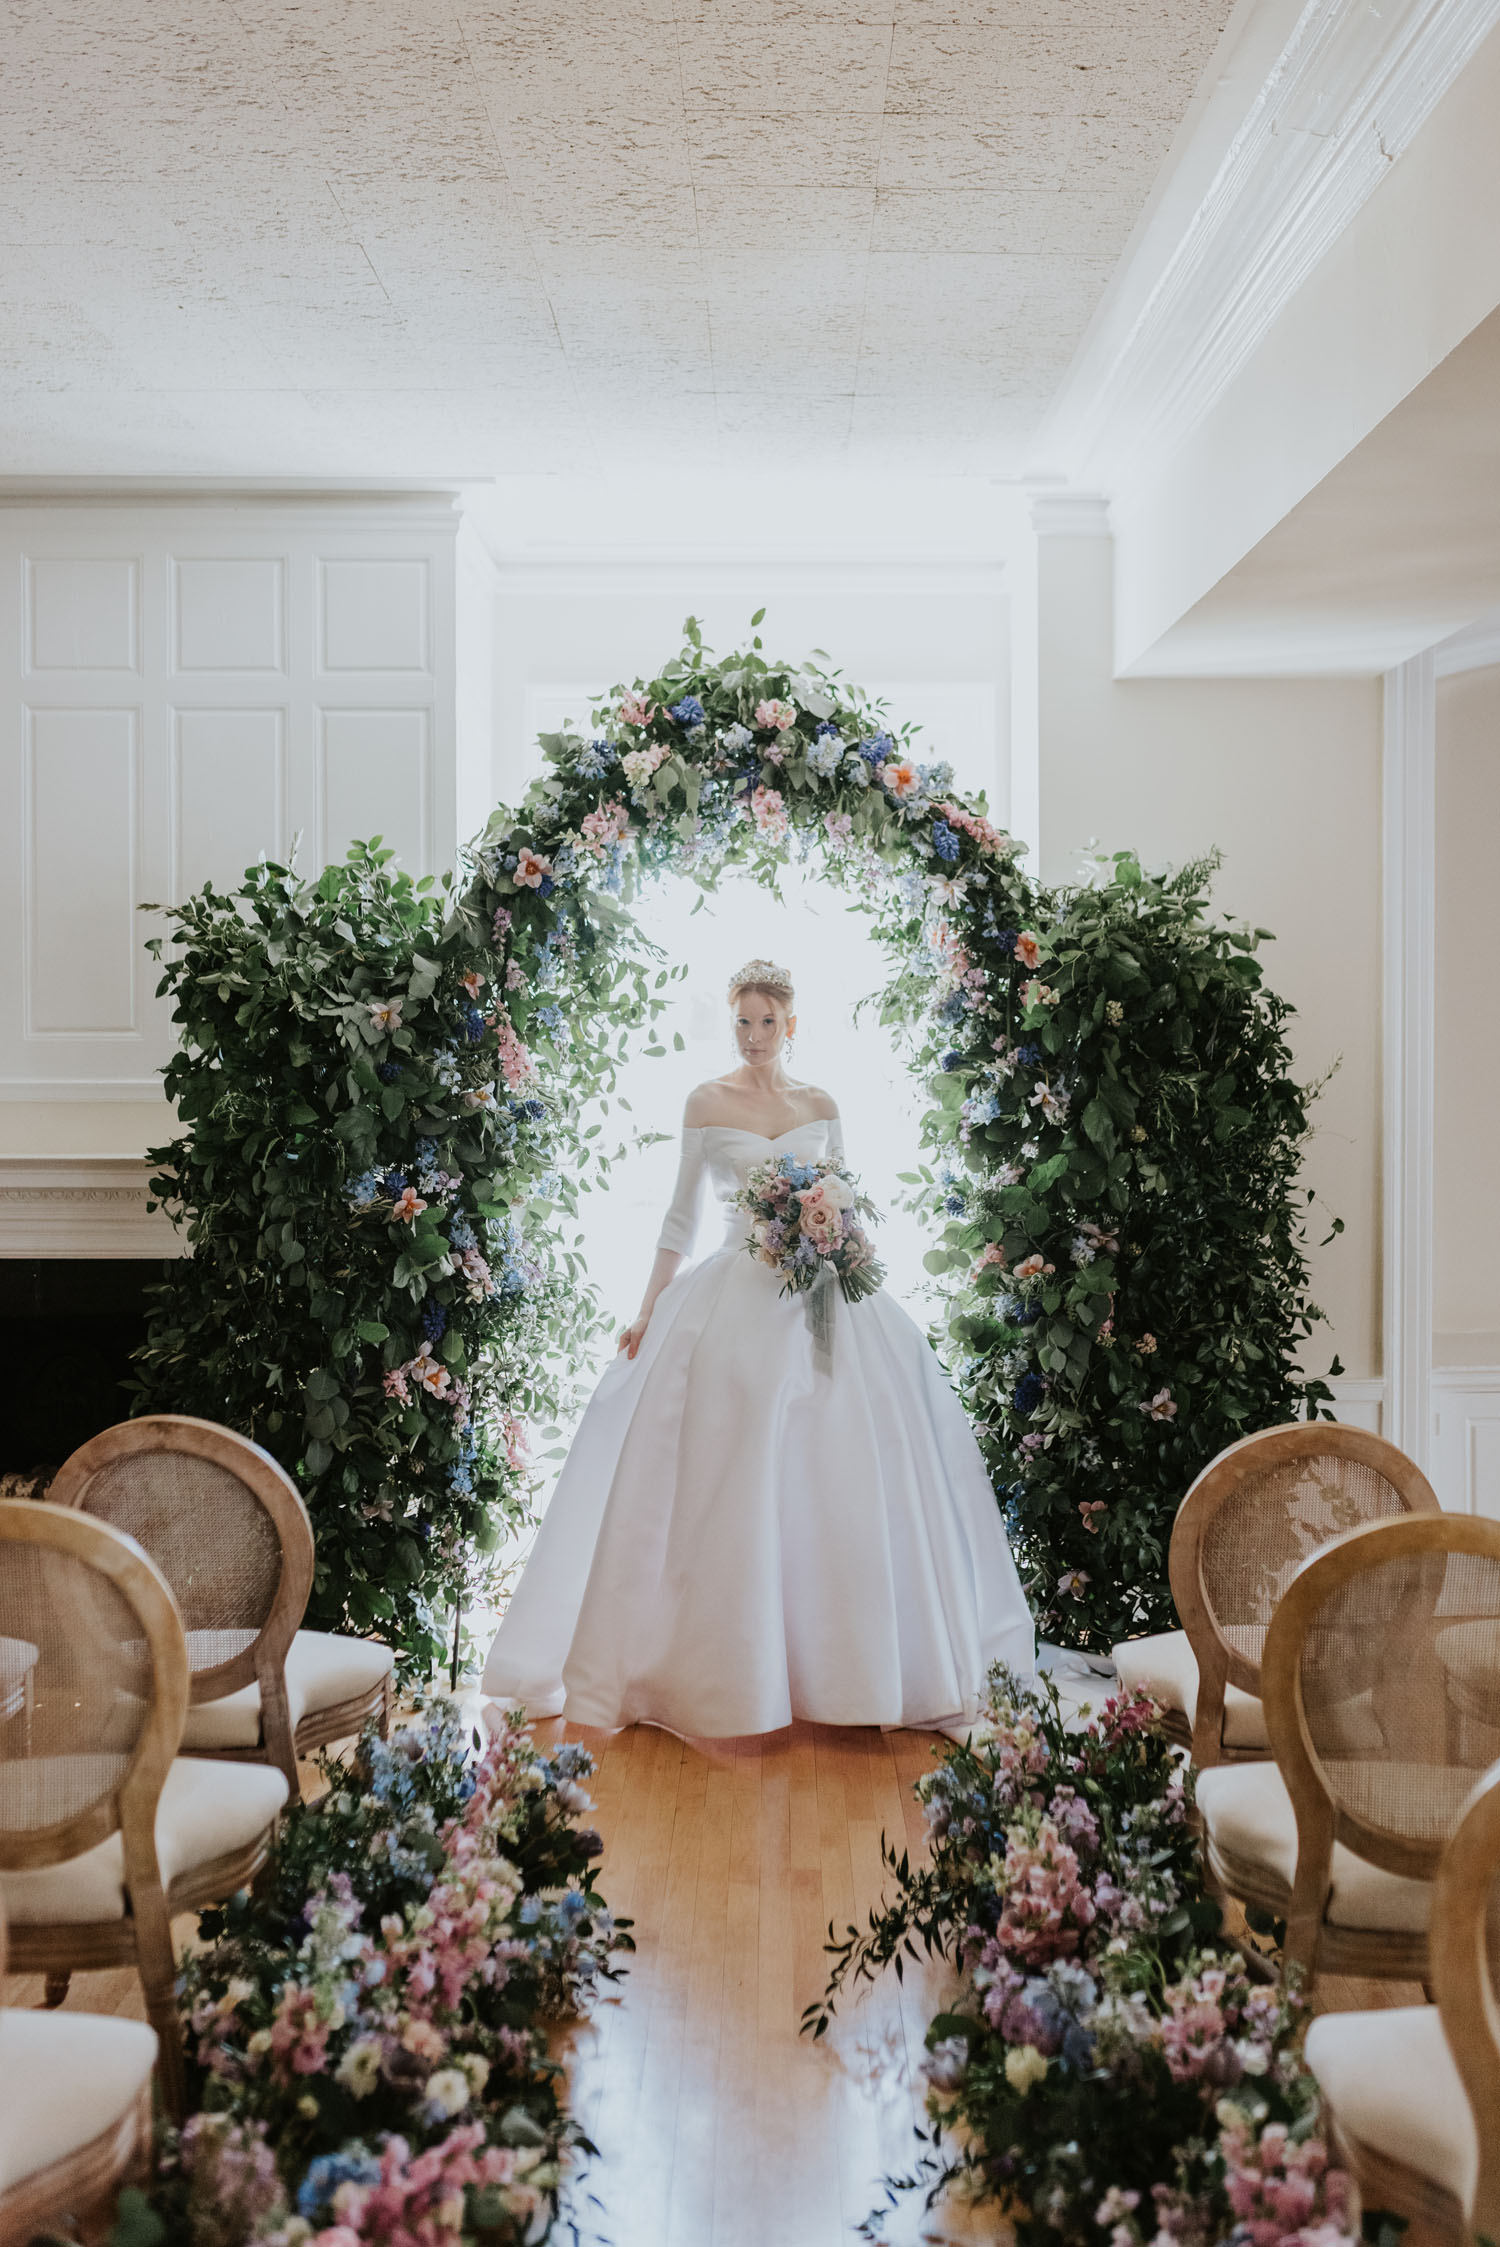 Bridgerton wedding dress